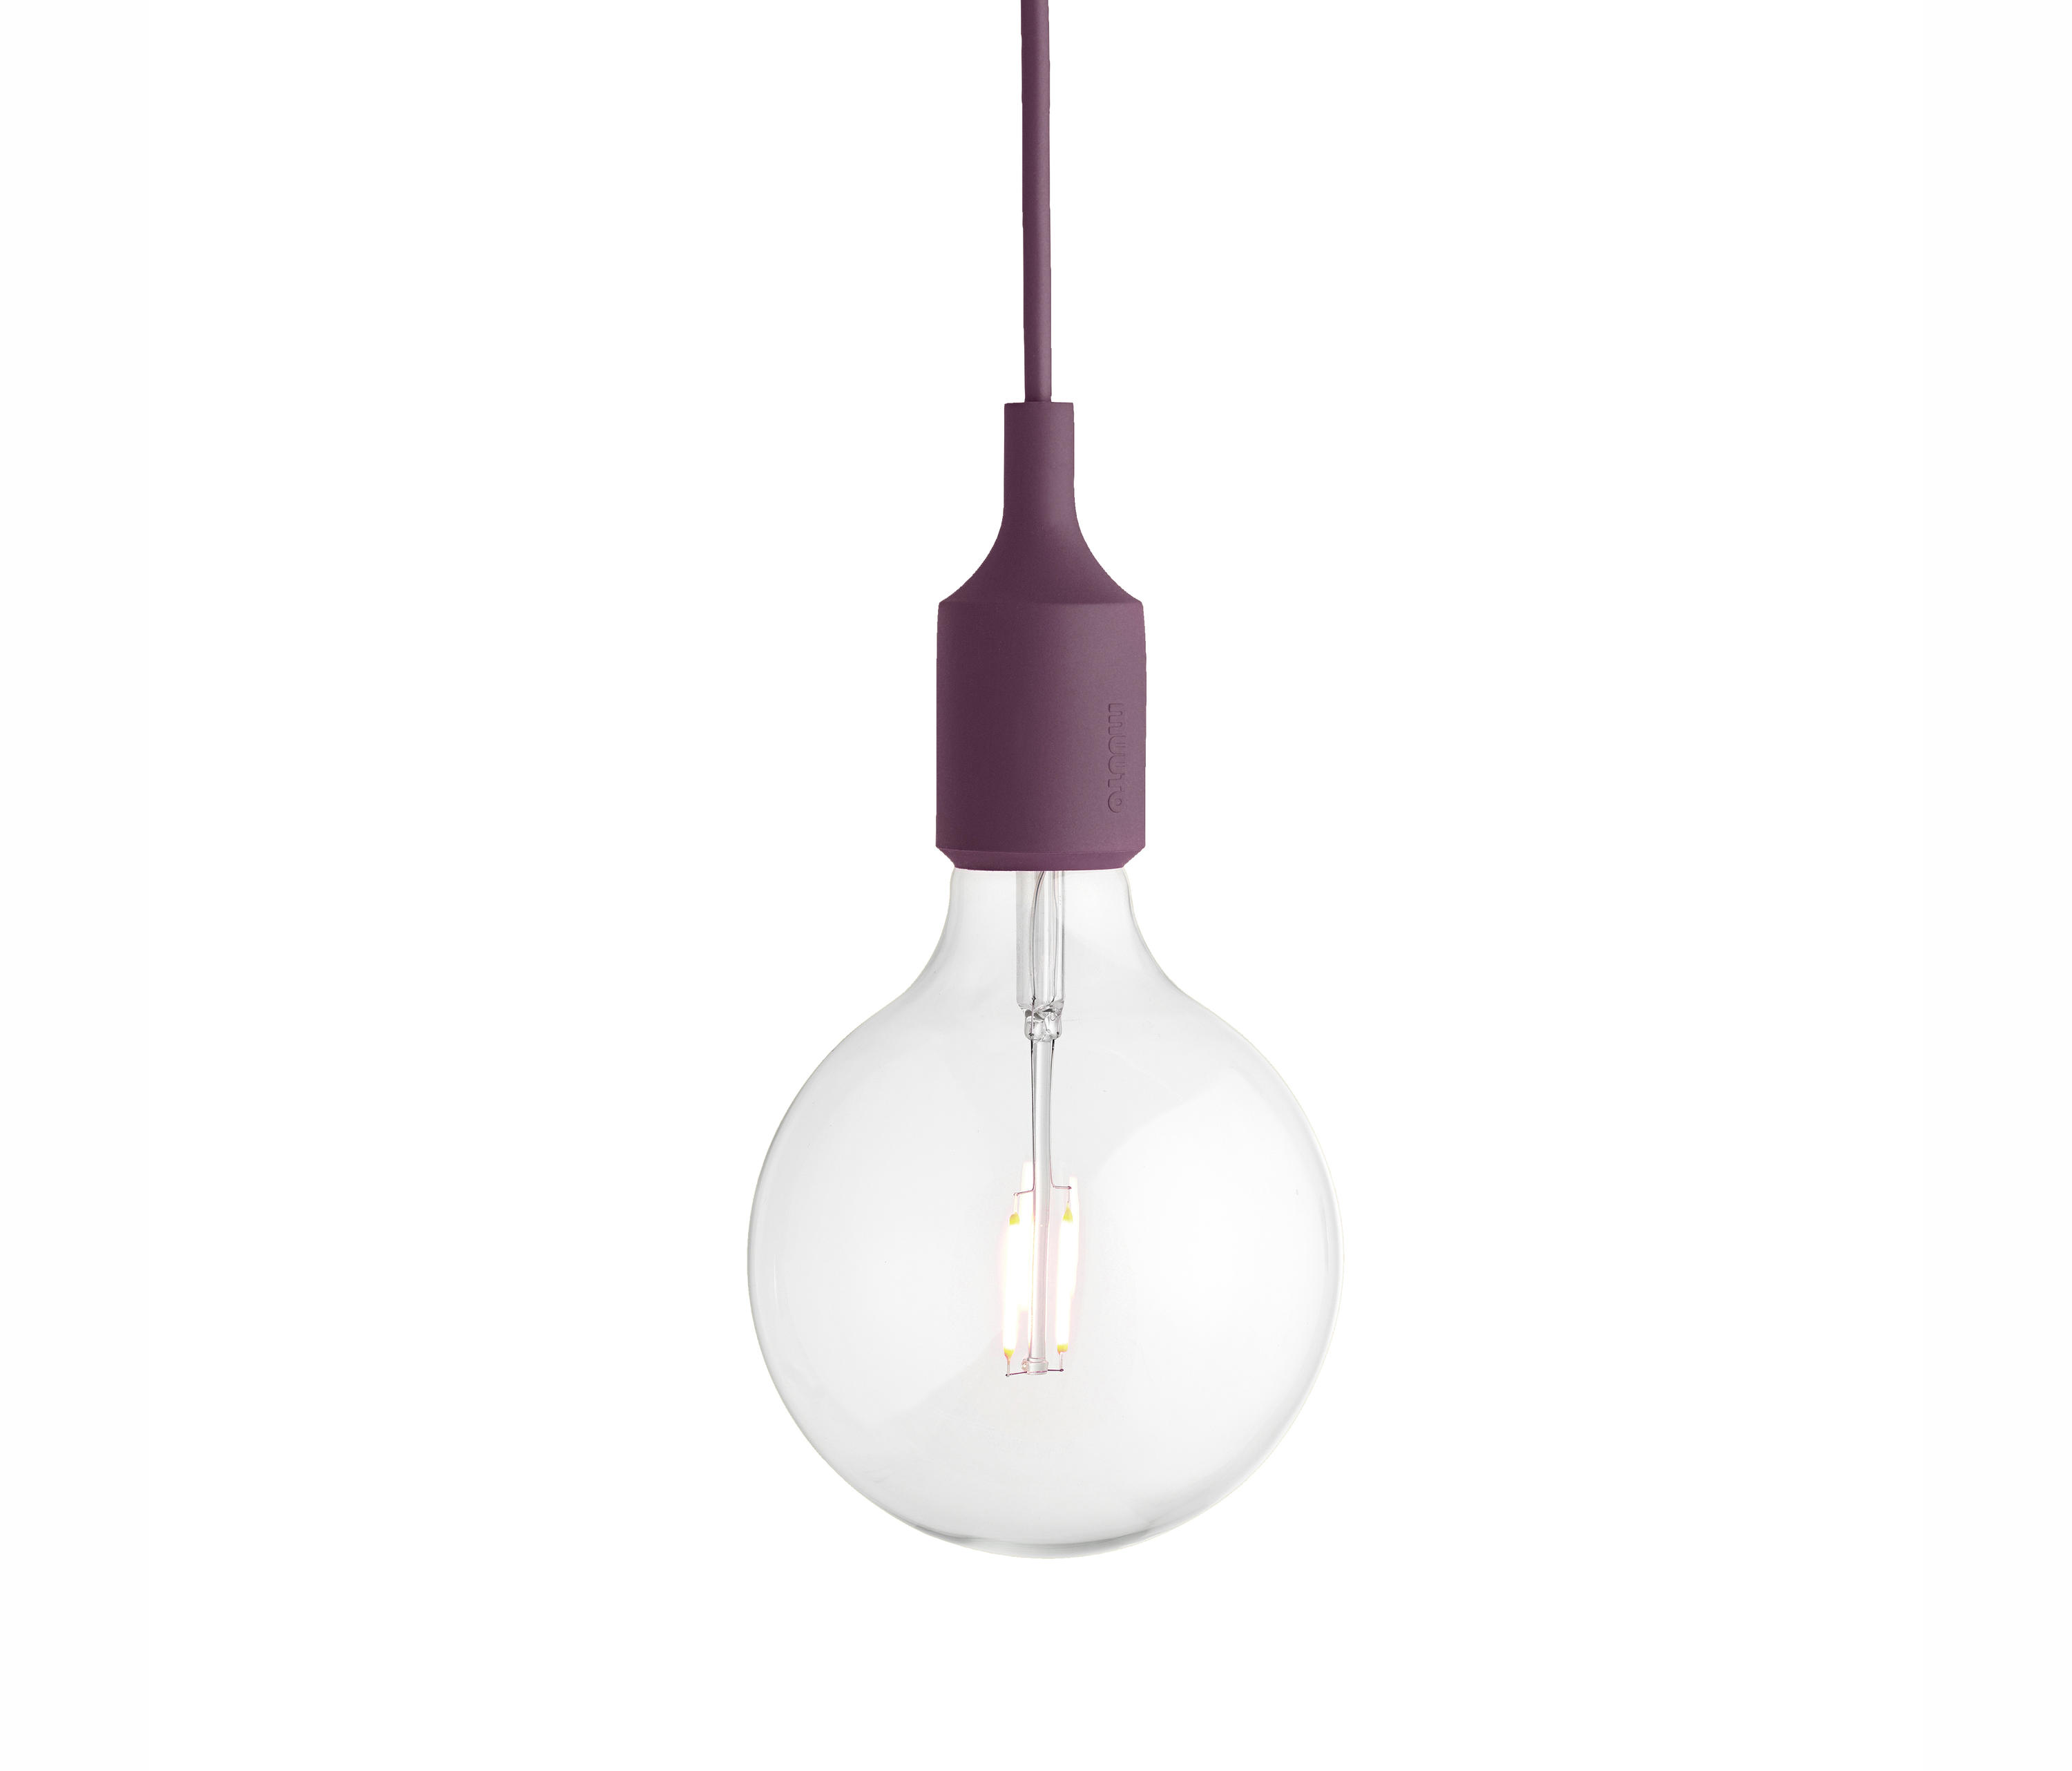 low priced fadef 30ce2 E27 PENDANT LAMP - Suspended lights from Muuto | Architonic